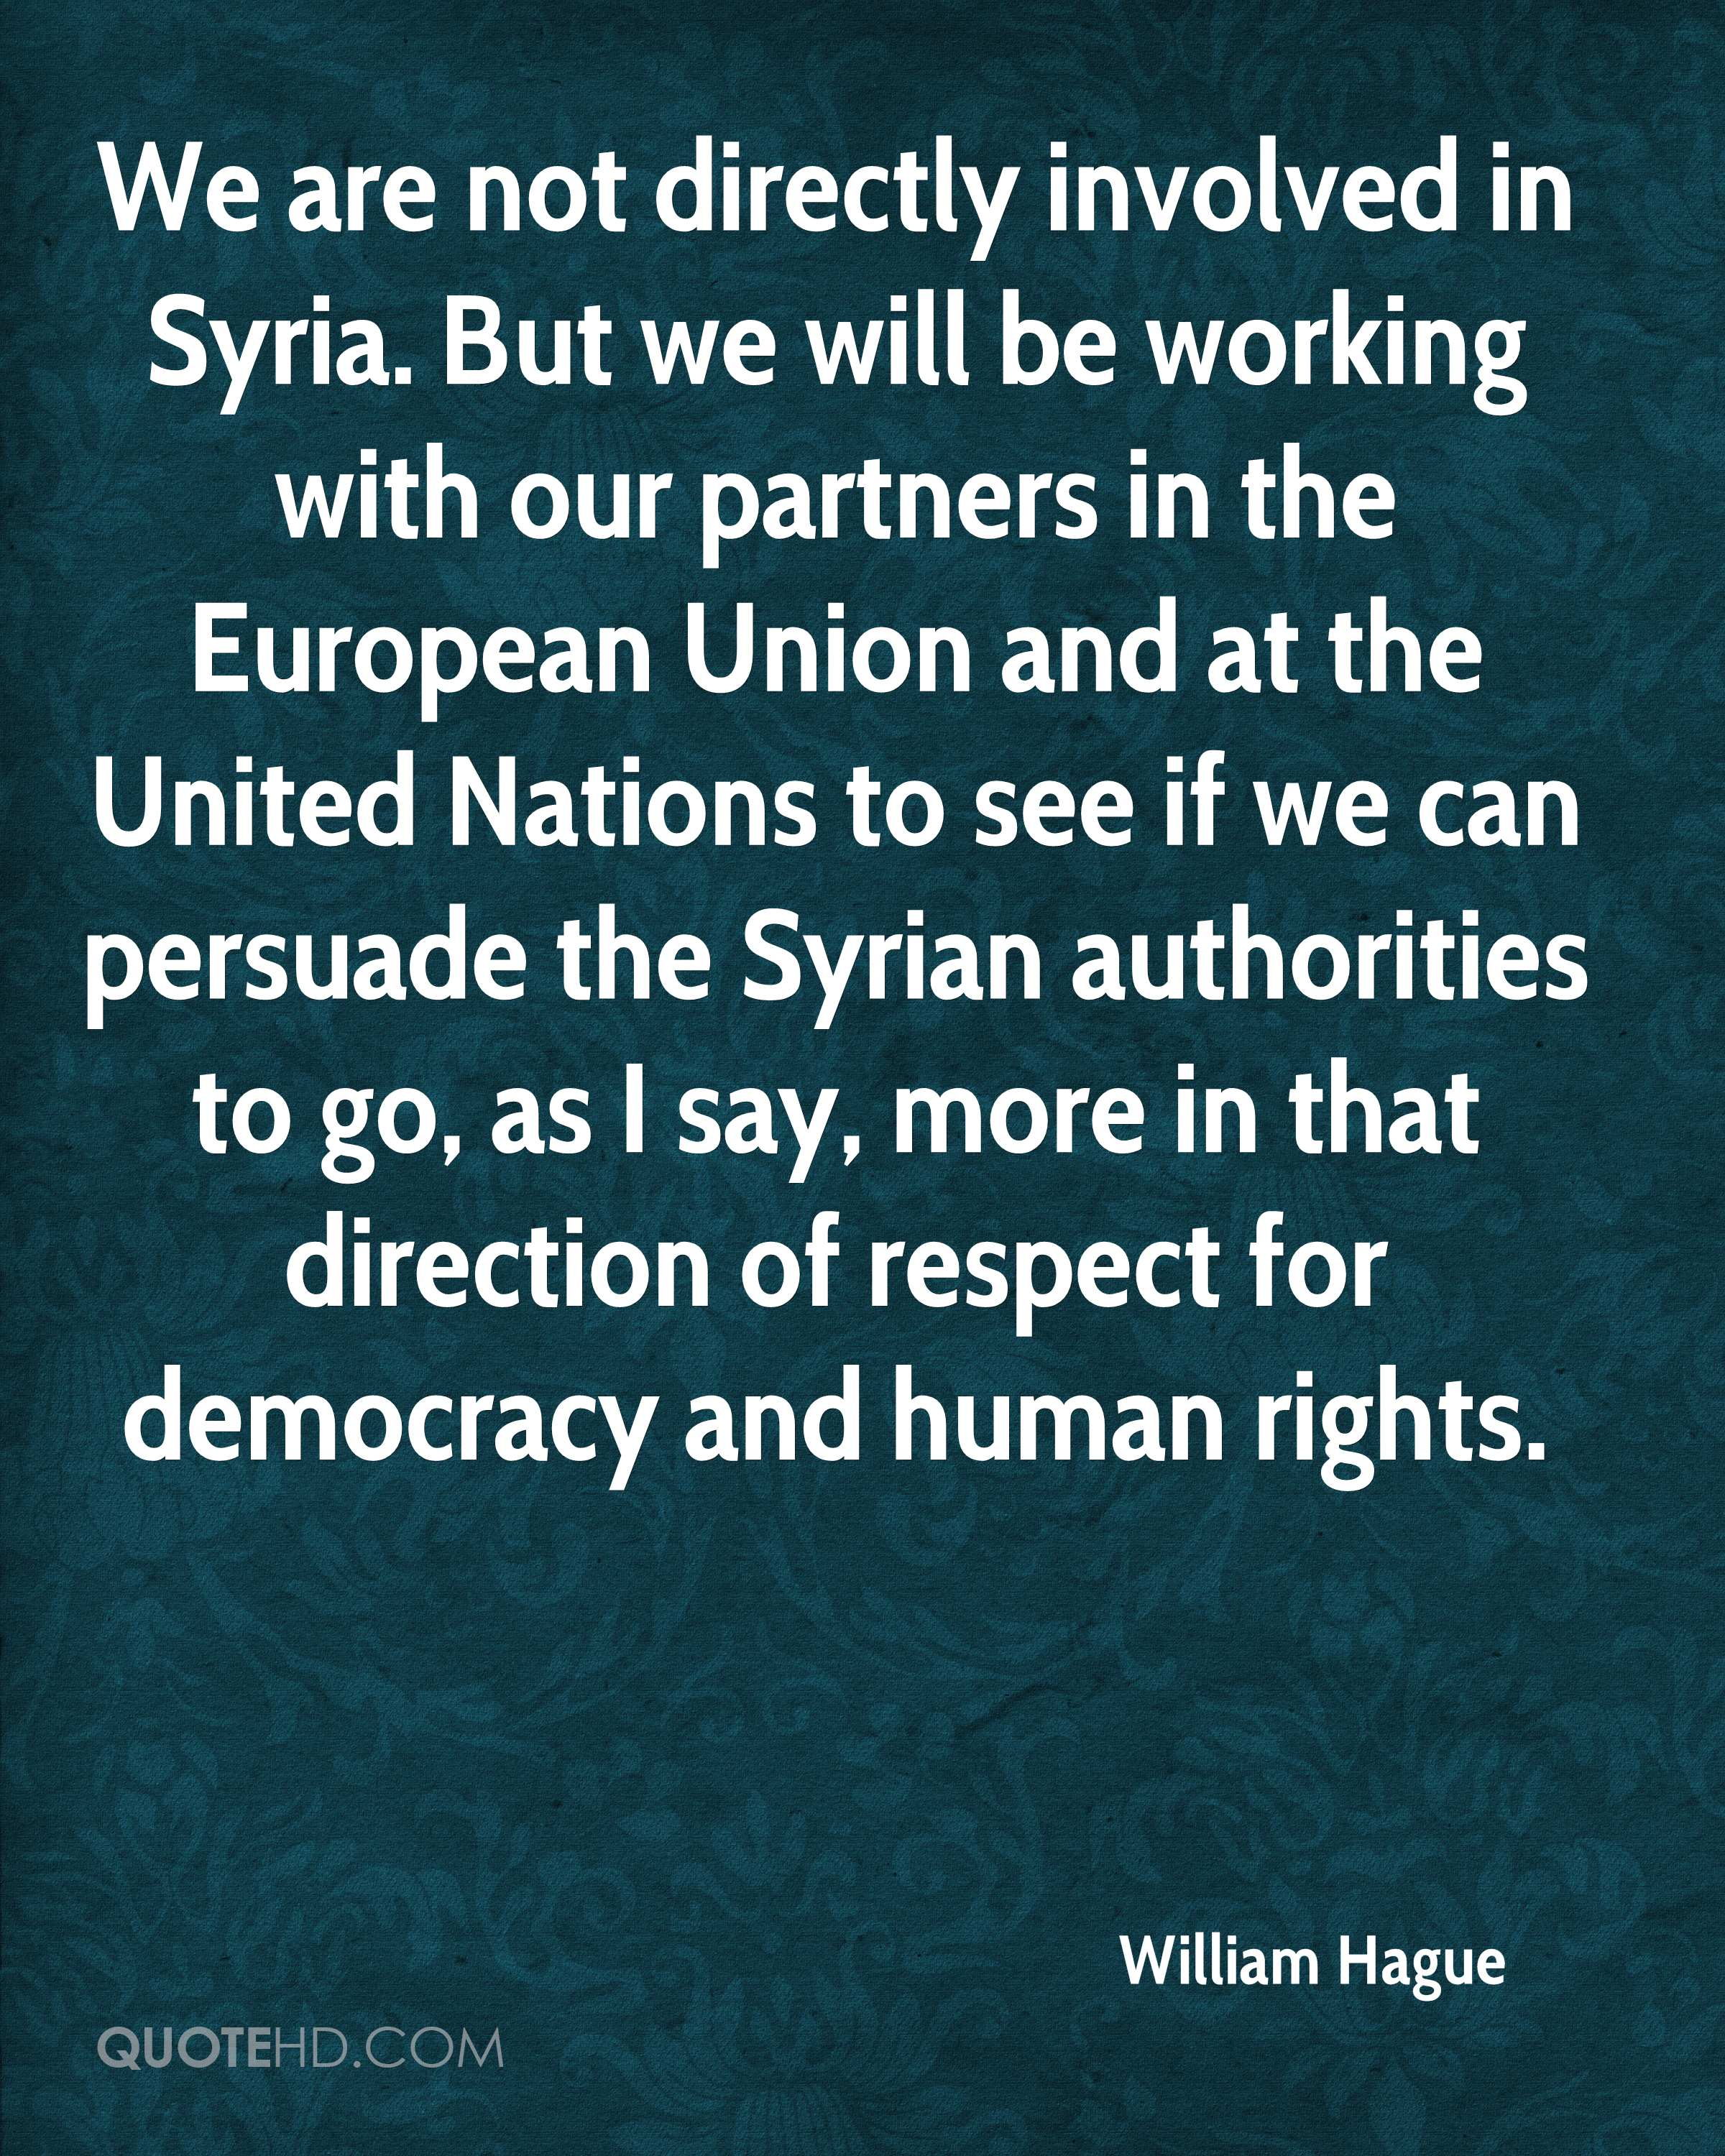 We are not directly involved in Syria. But we will be working with our partners in the European Union and at the United Nations to see if we can persuade the Syrian authorities to go, as I say, more in that direction of respect for democracy and human rights.